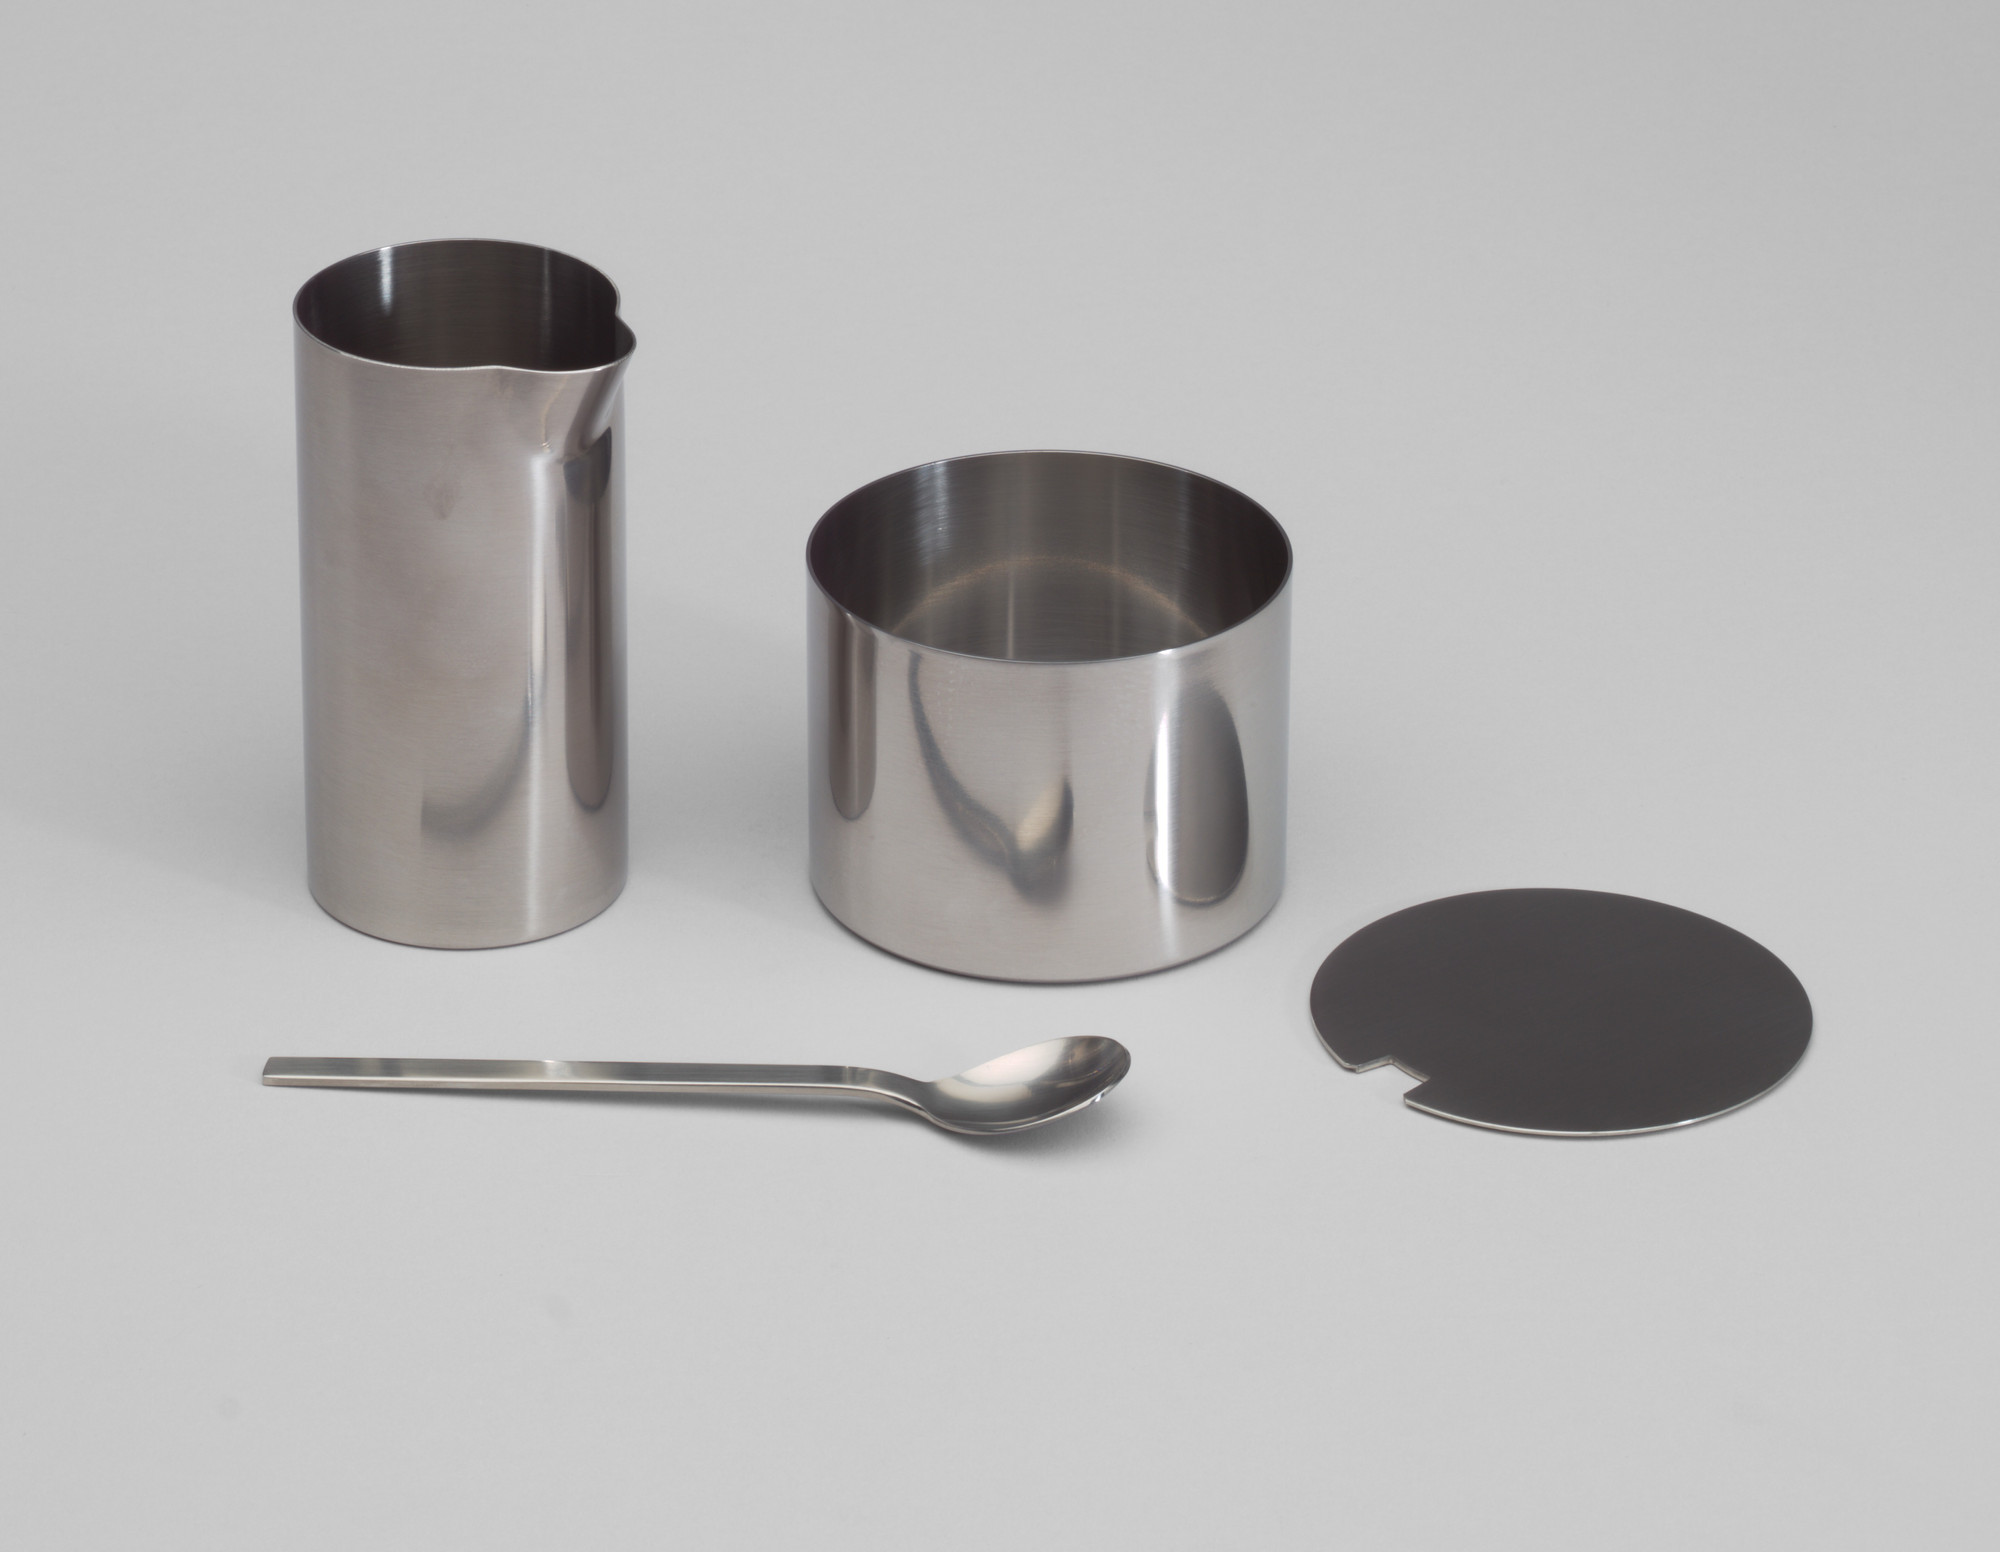 Arne Jacobsen. Cylinda Sugar Bowl and Creamer. 1964-67